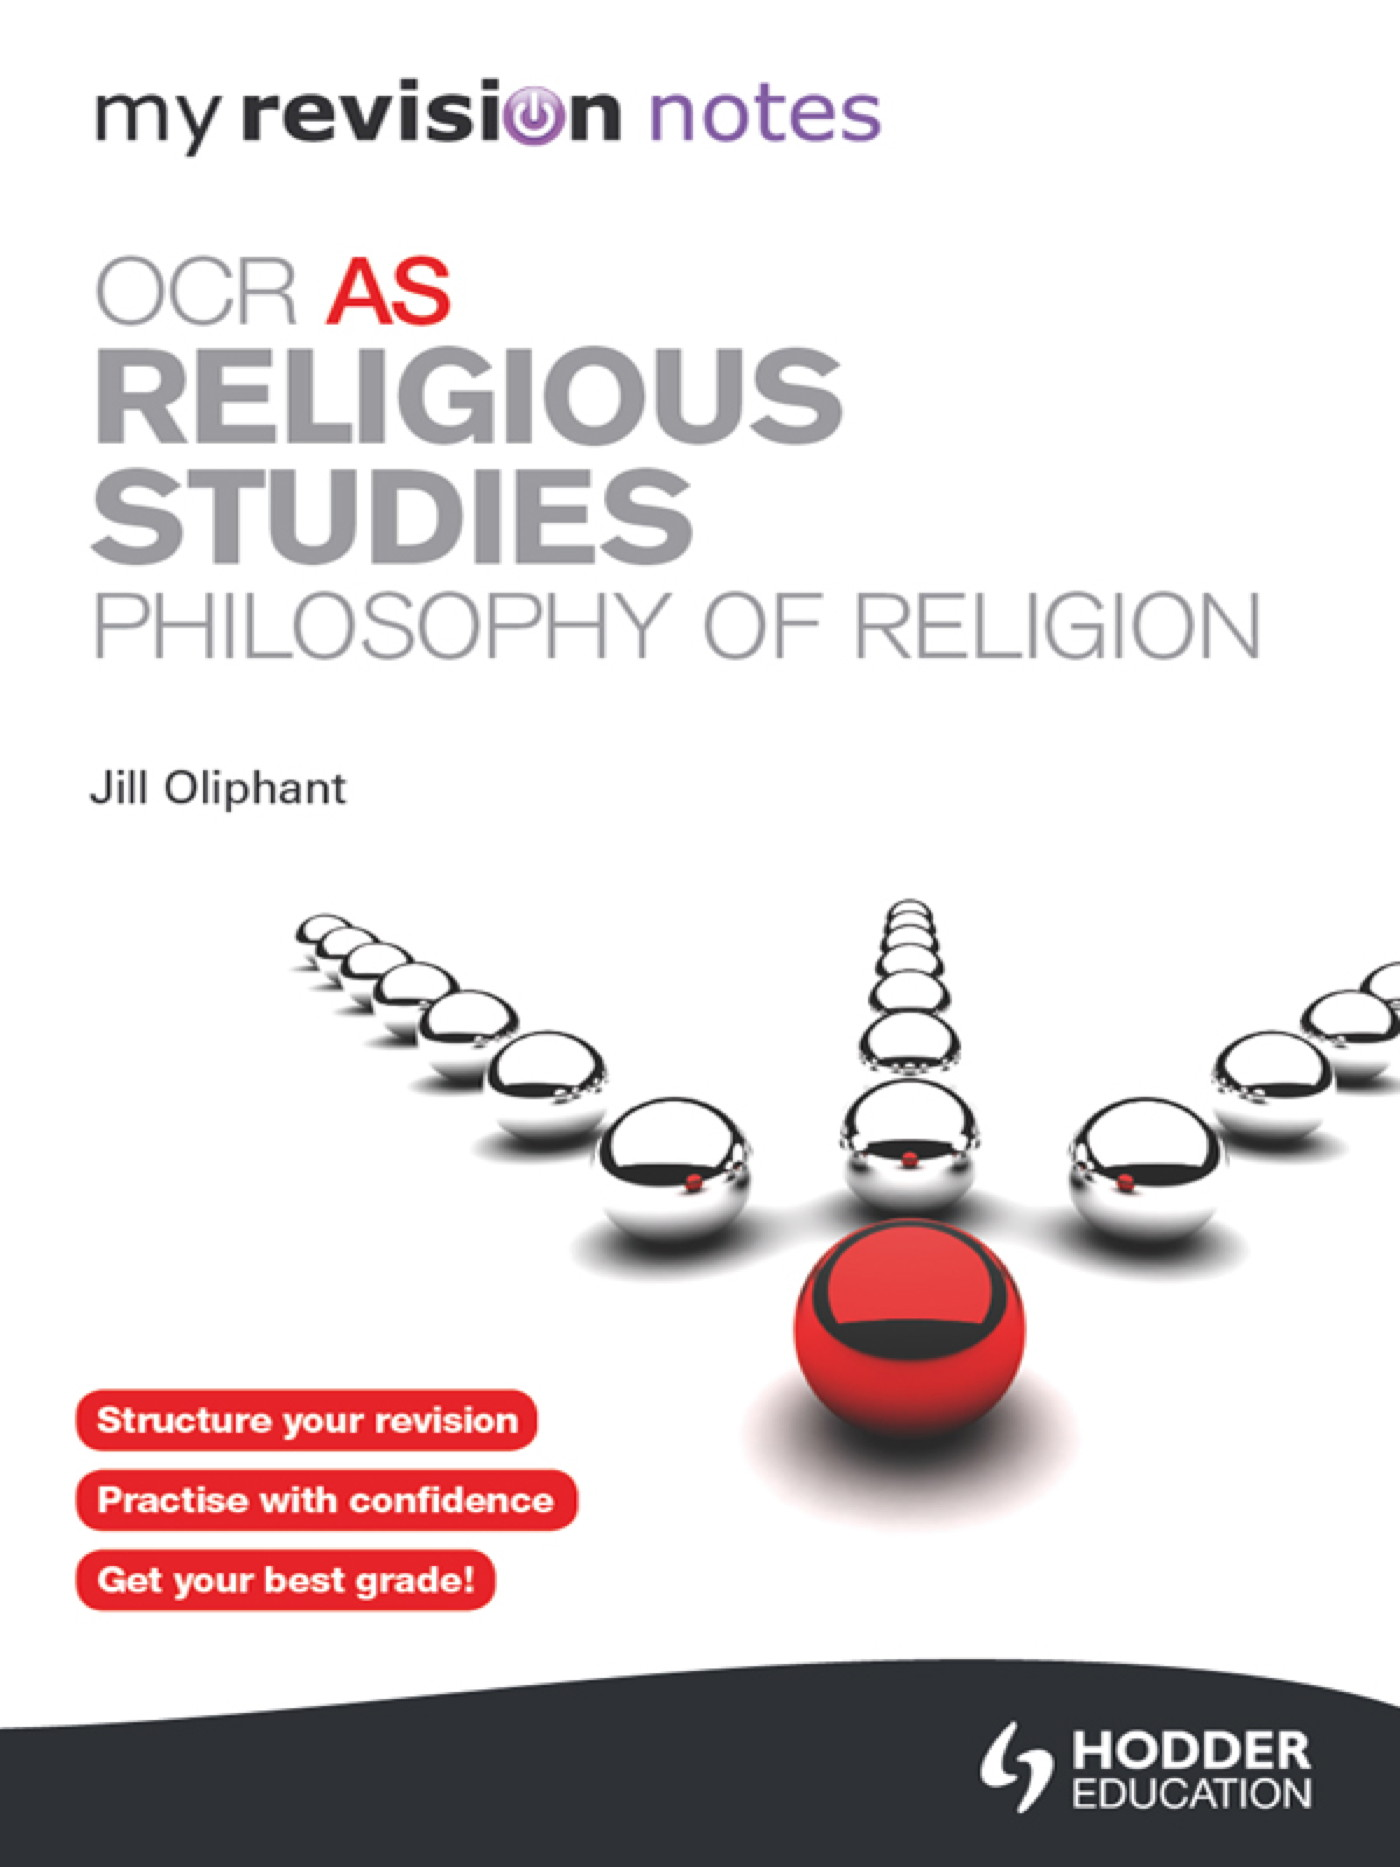 ocr religious studies essays